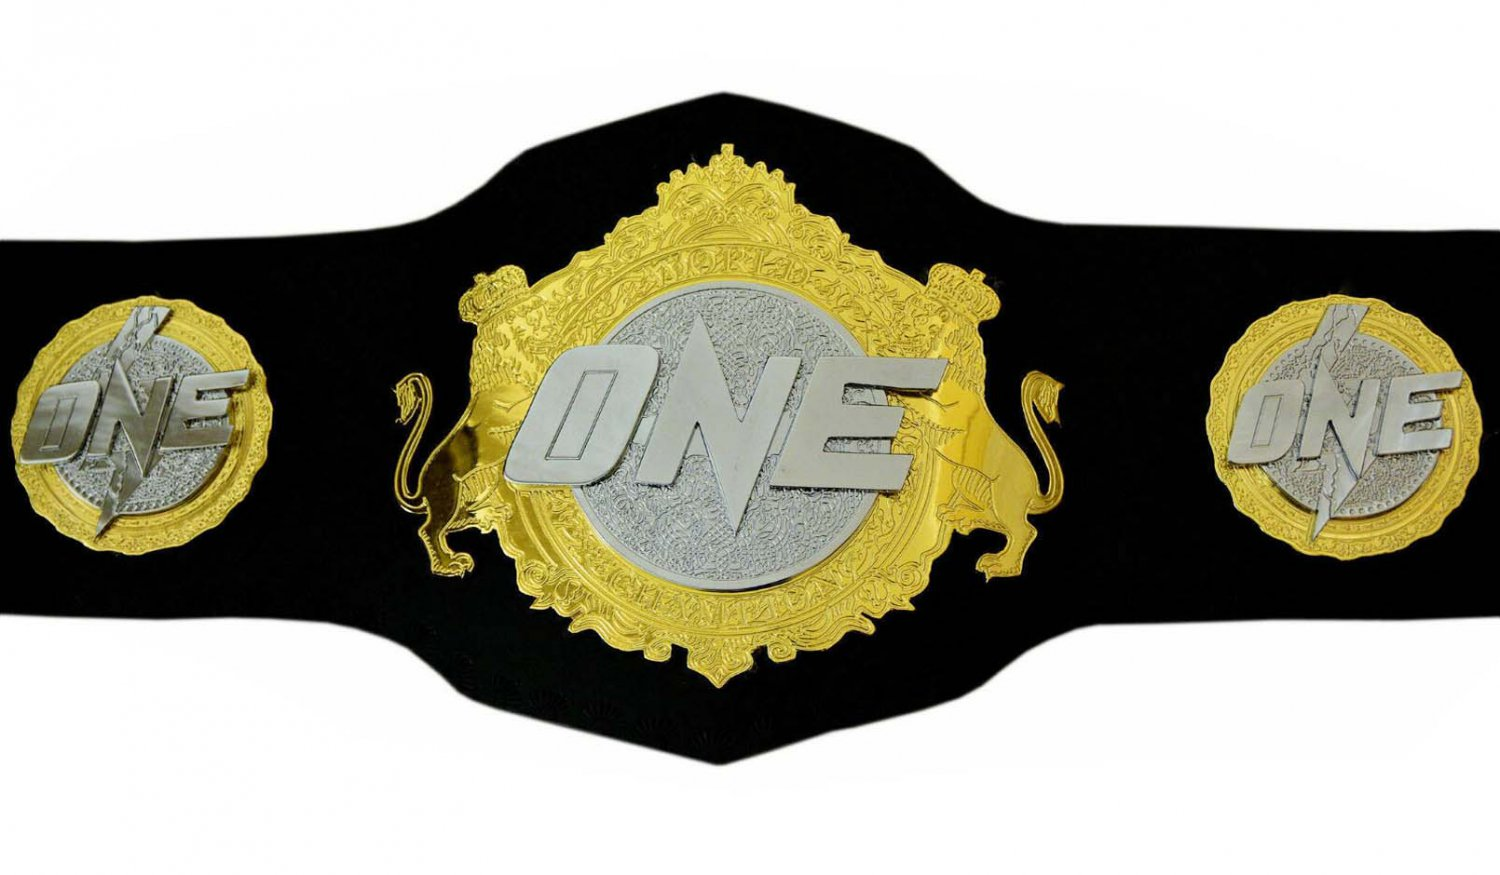 ONE MMA BOXING CHAMPIONSHIP BELT ADULT SIZE BLACK LEATHER STRAP